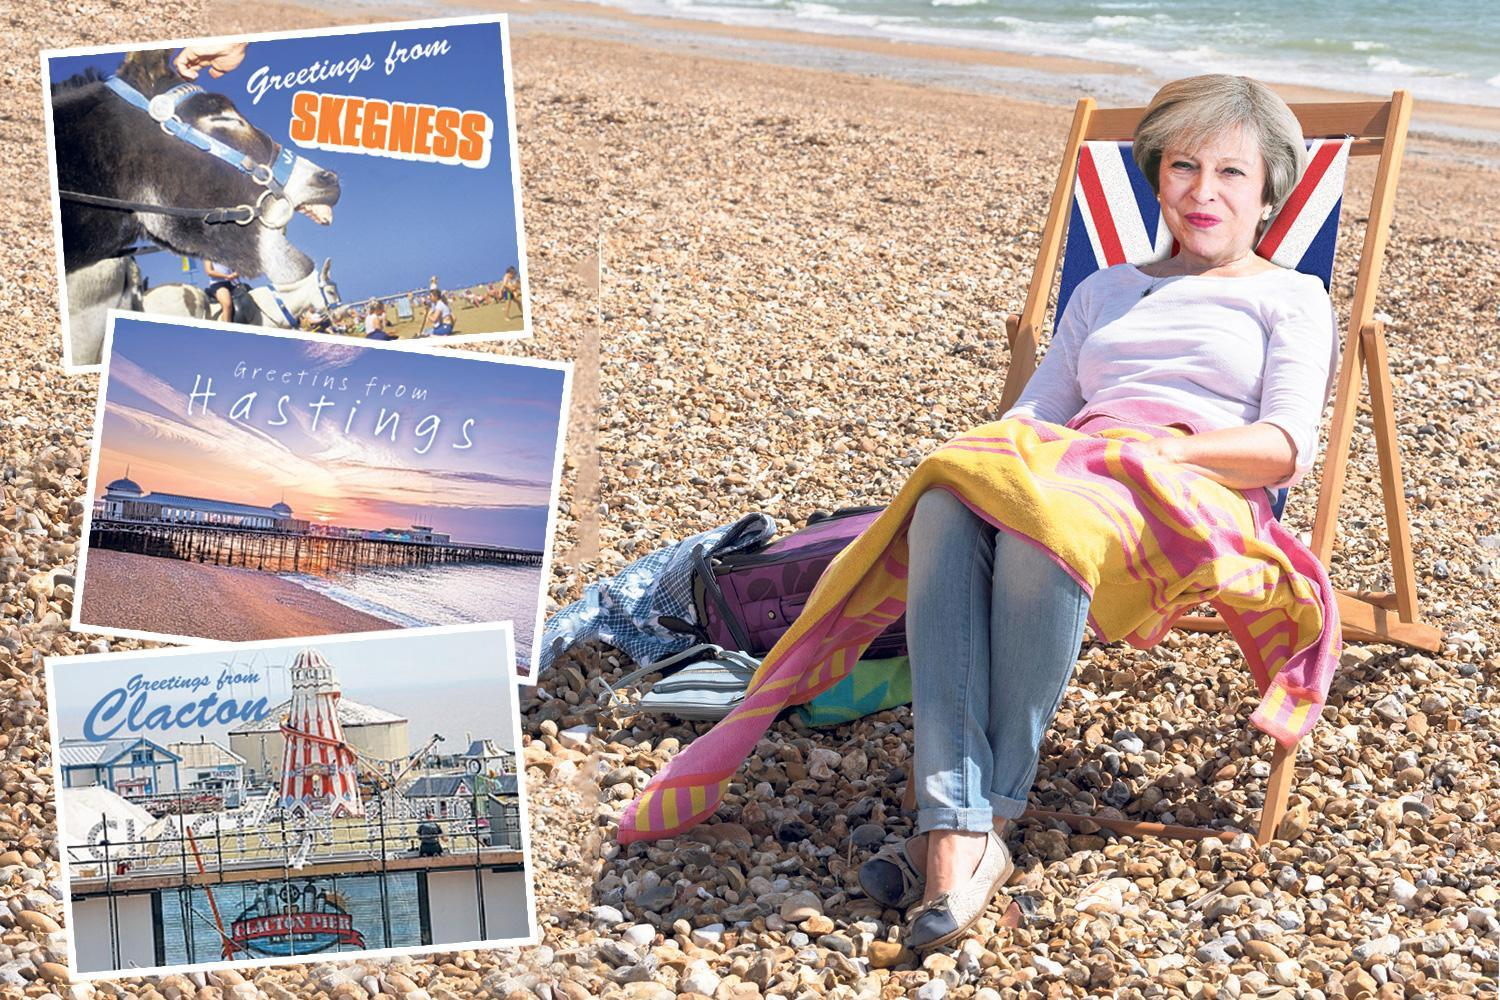 Theresa May to splash cash in Tory coastal towns & Labour heartlands to win Brexit support